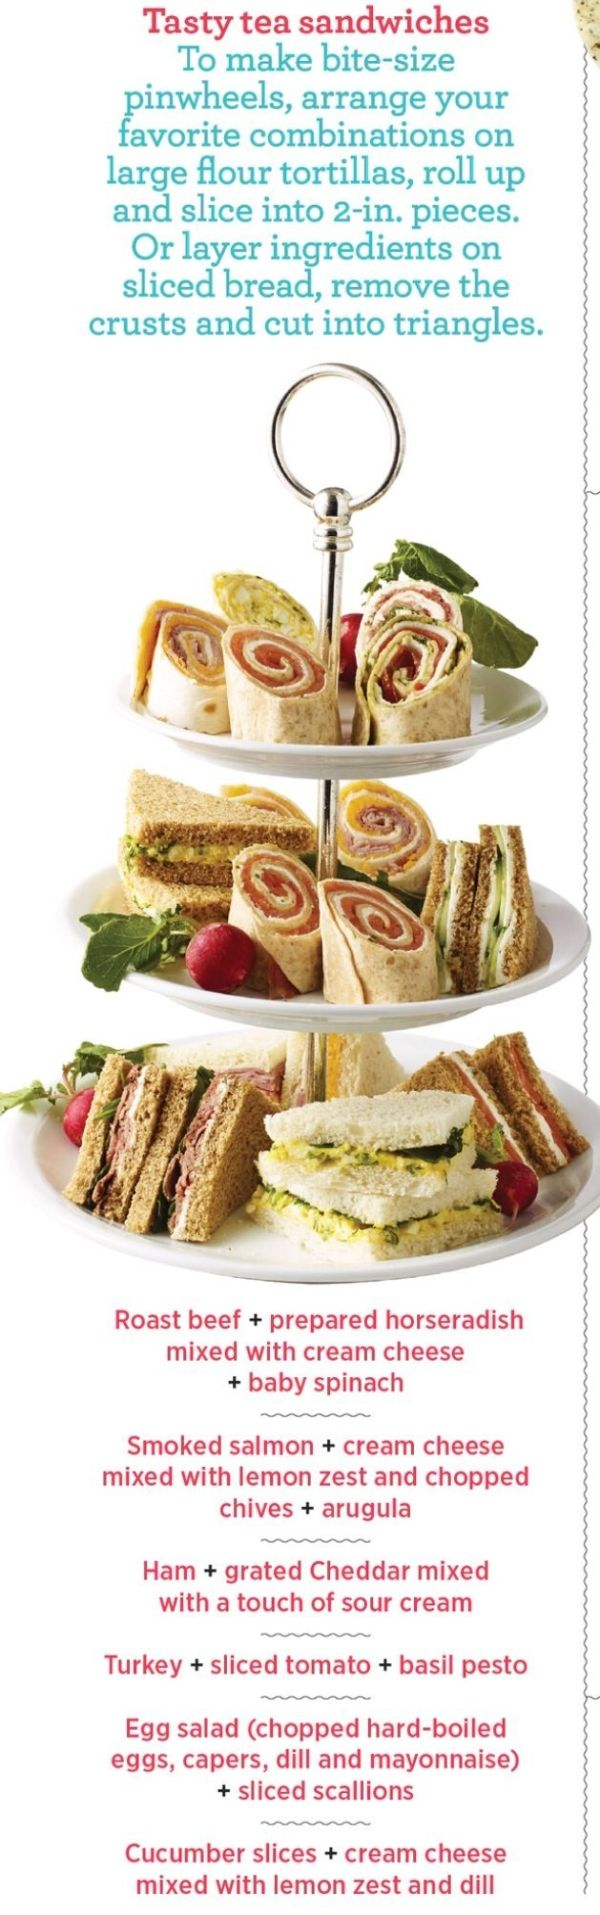 Tea sandwiches by lakisha